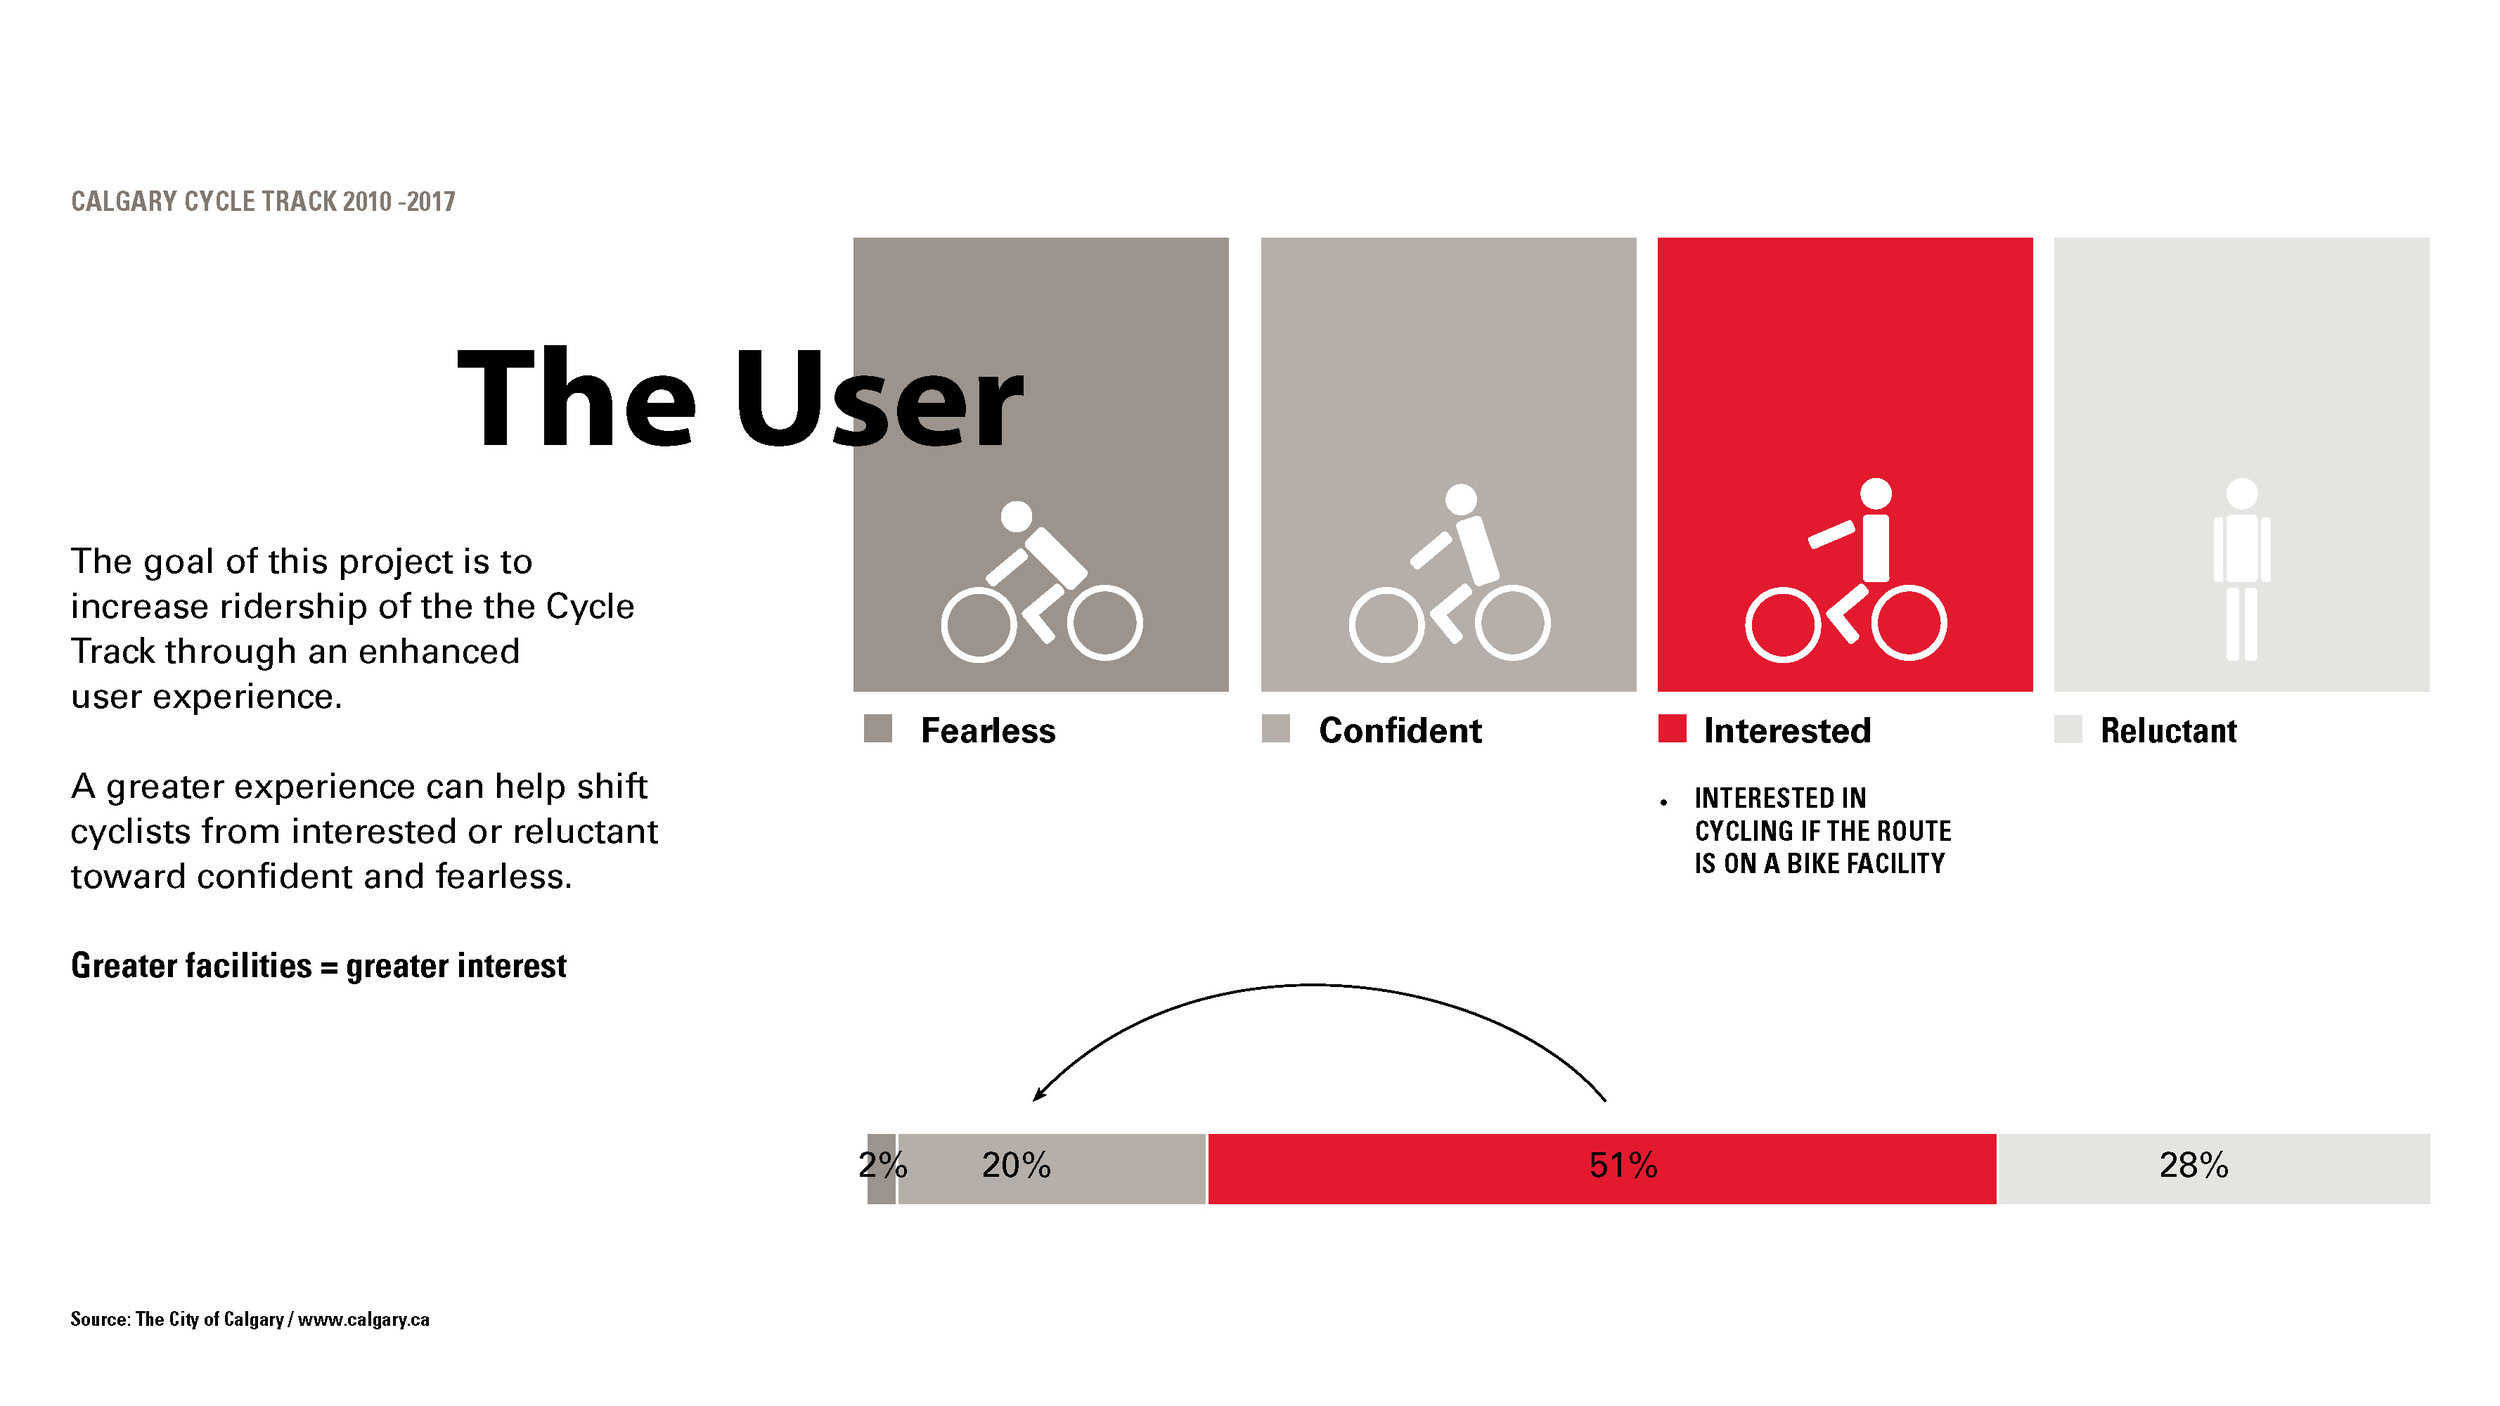 The presentation focused on four different users of the cycle track network.